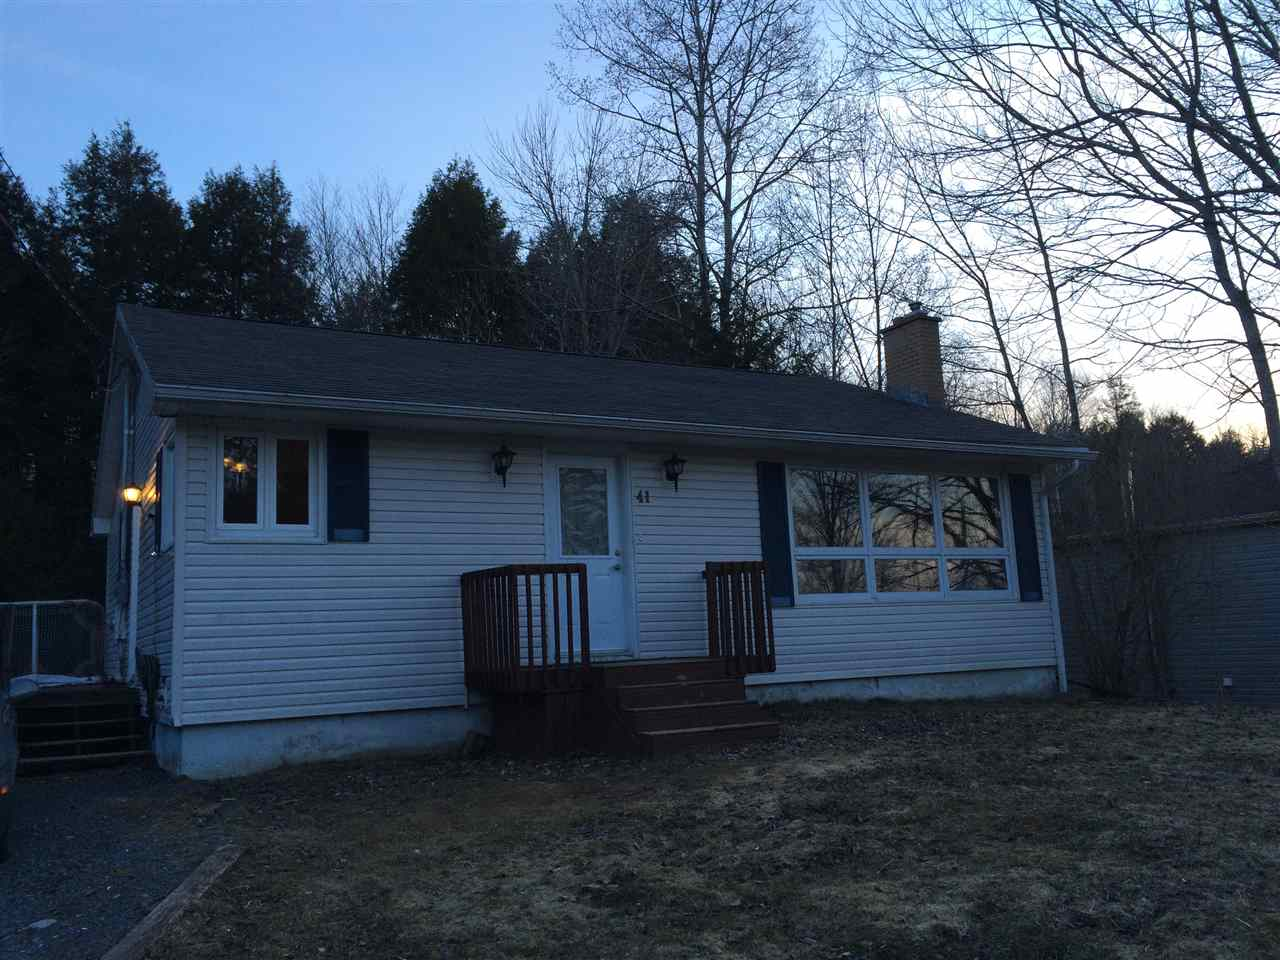 Main Photo: 41 TUCKER LAKE Road in Beaver Bank: 26-Beaverbank, Upper Sackville Residential for sale (Halifax-Dartmouth)  : MLS® # 201606118